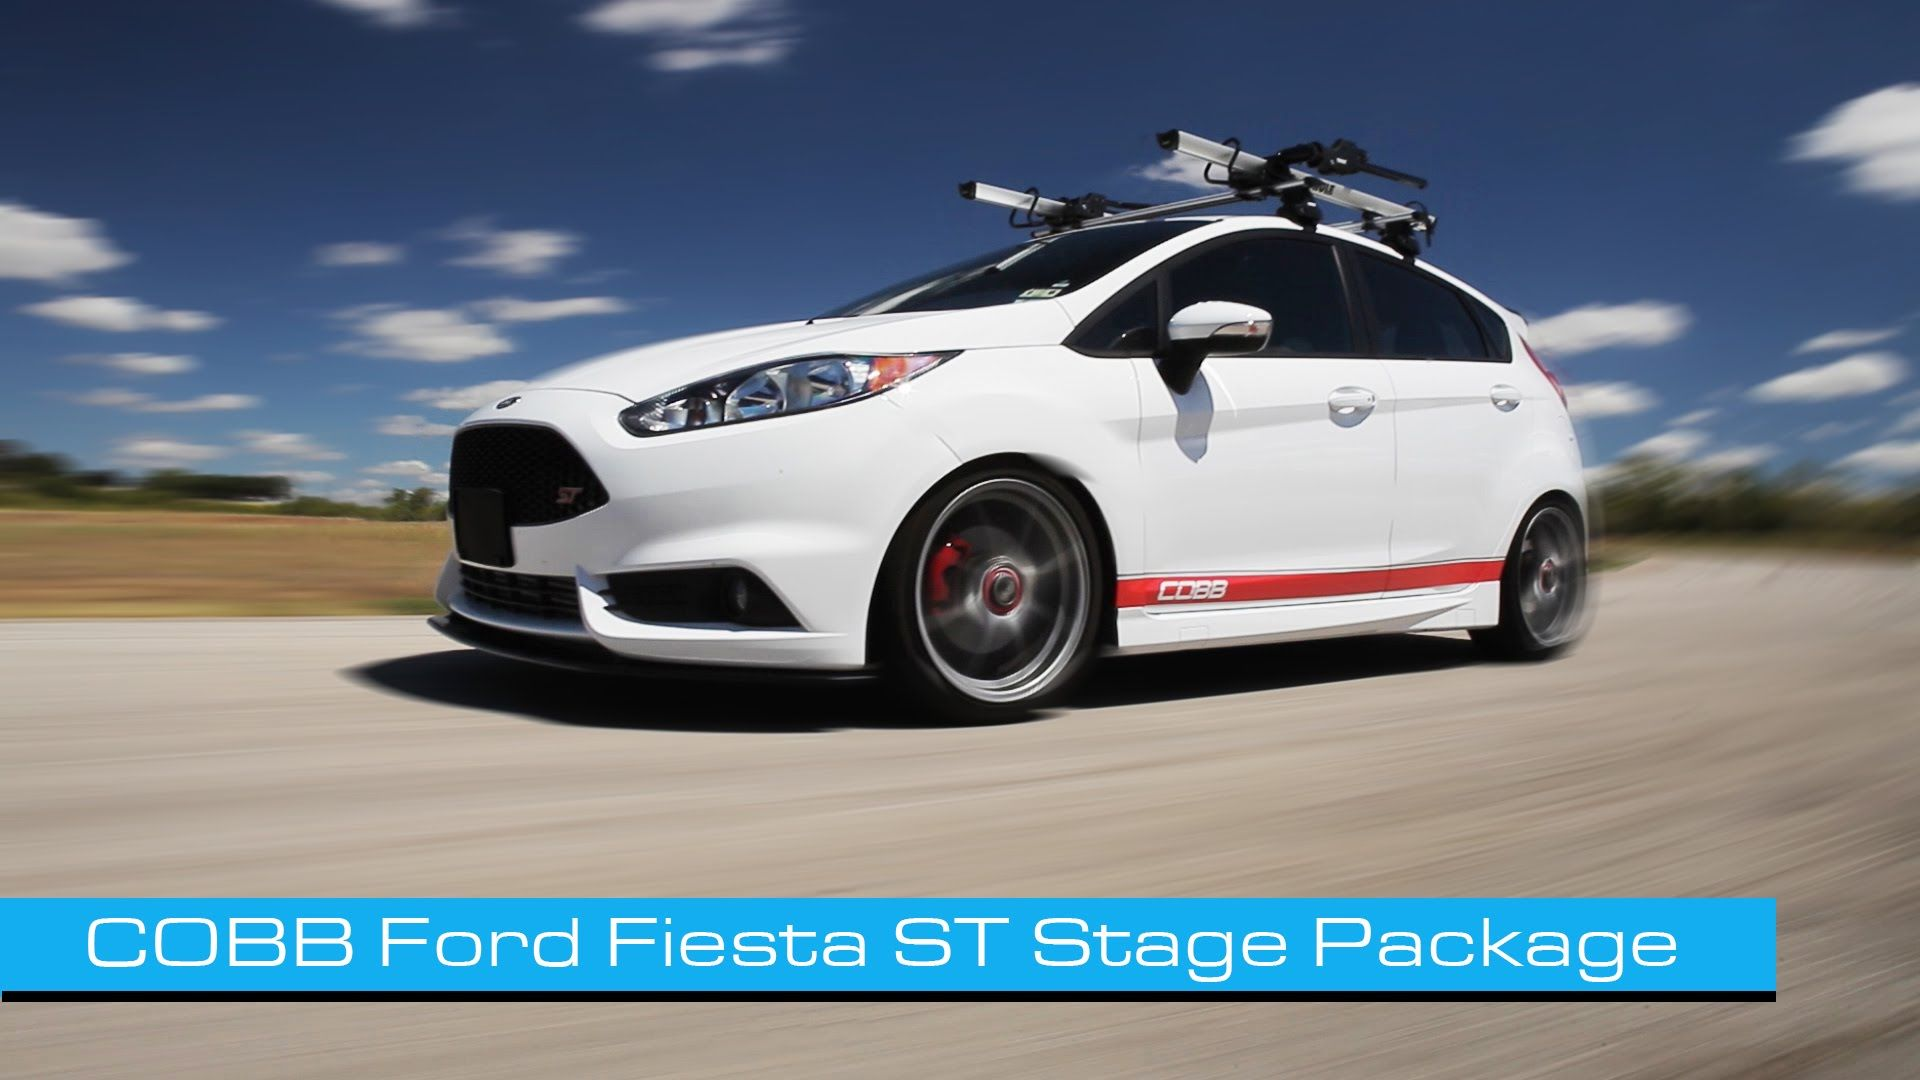 Cobb Tuning Ford Fiesta St Stage Packages With Images Ford Fiesta St Ford Fiesta Fiesta St